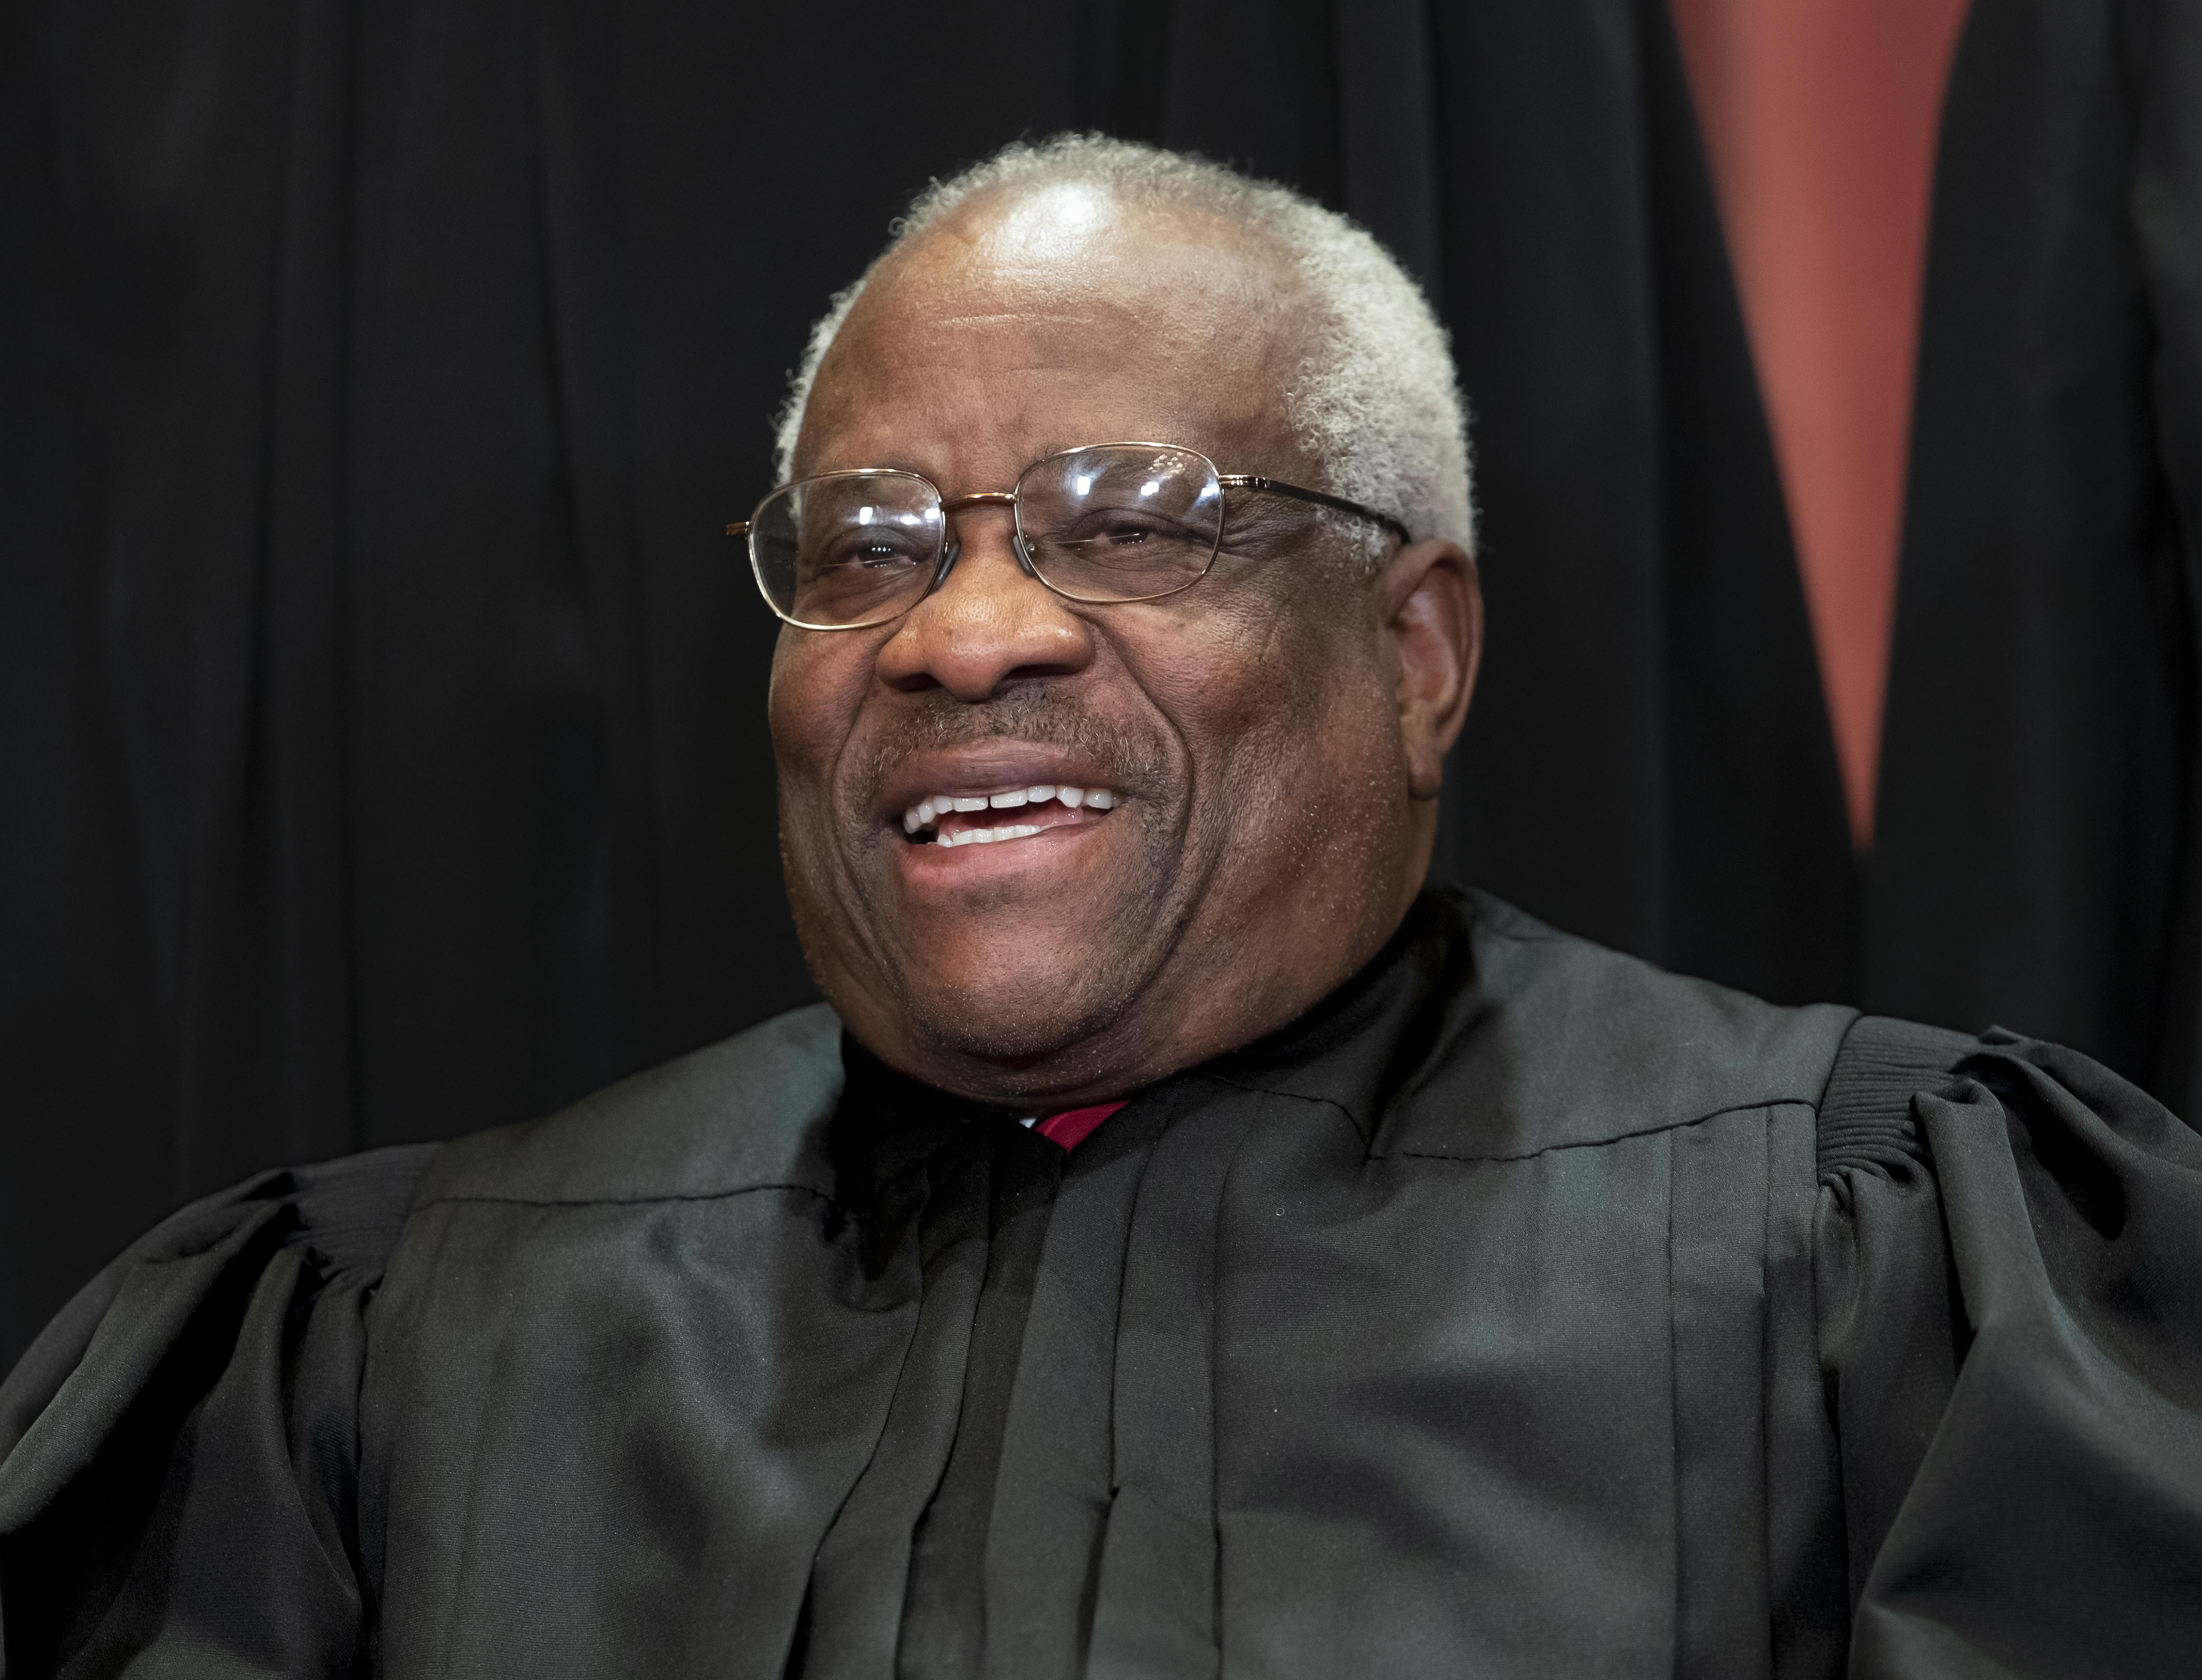 Justice Clarence Thomas quashes retirement rumors: 'I enjoy being here'